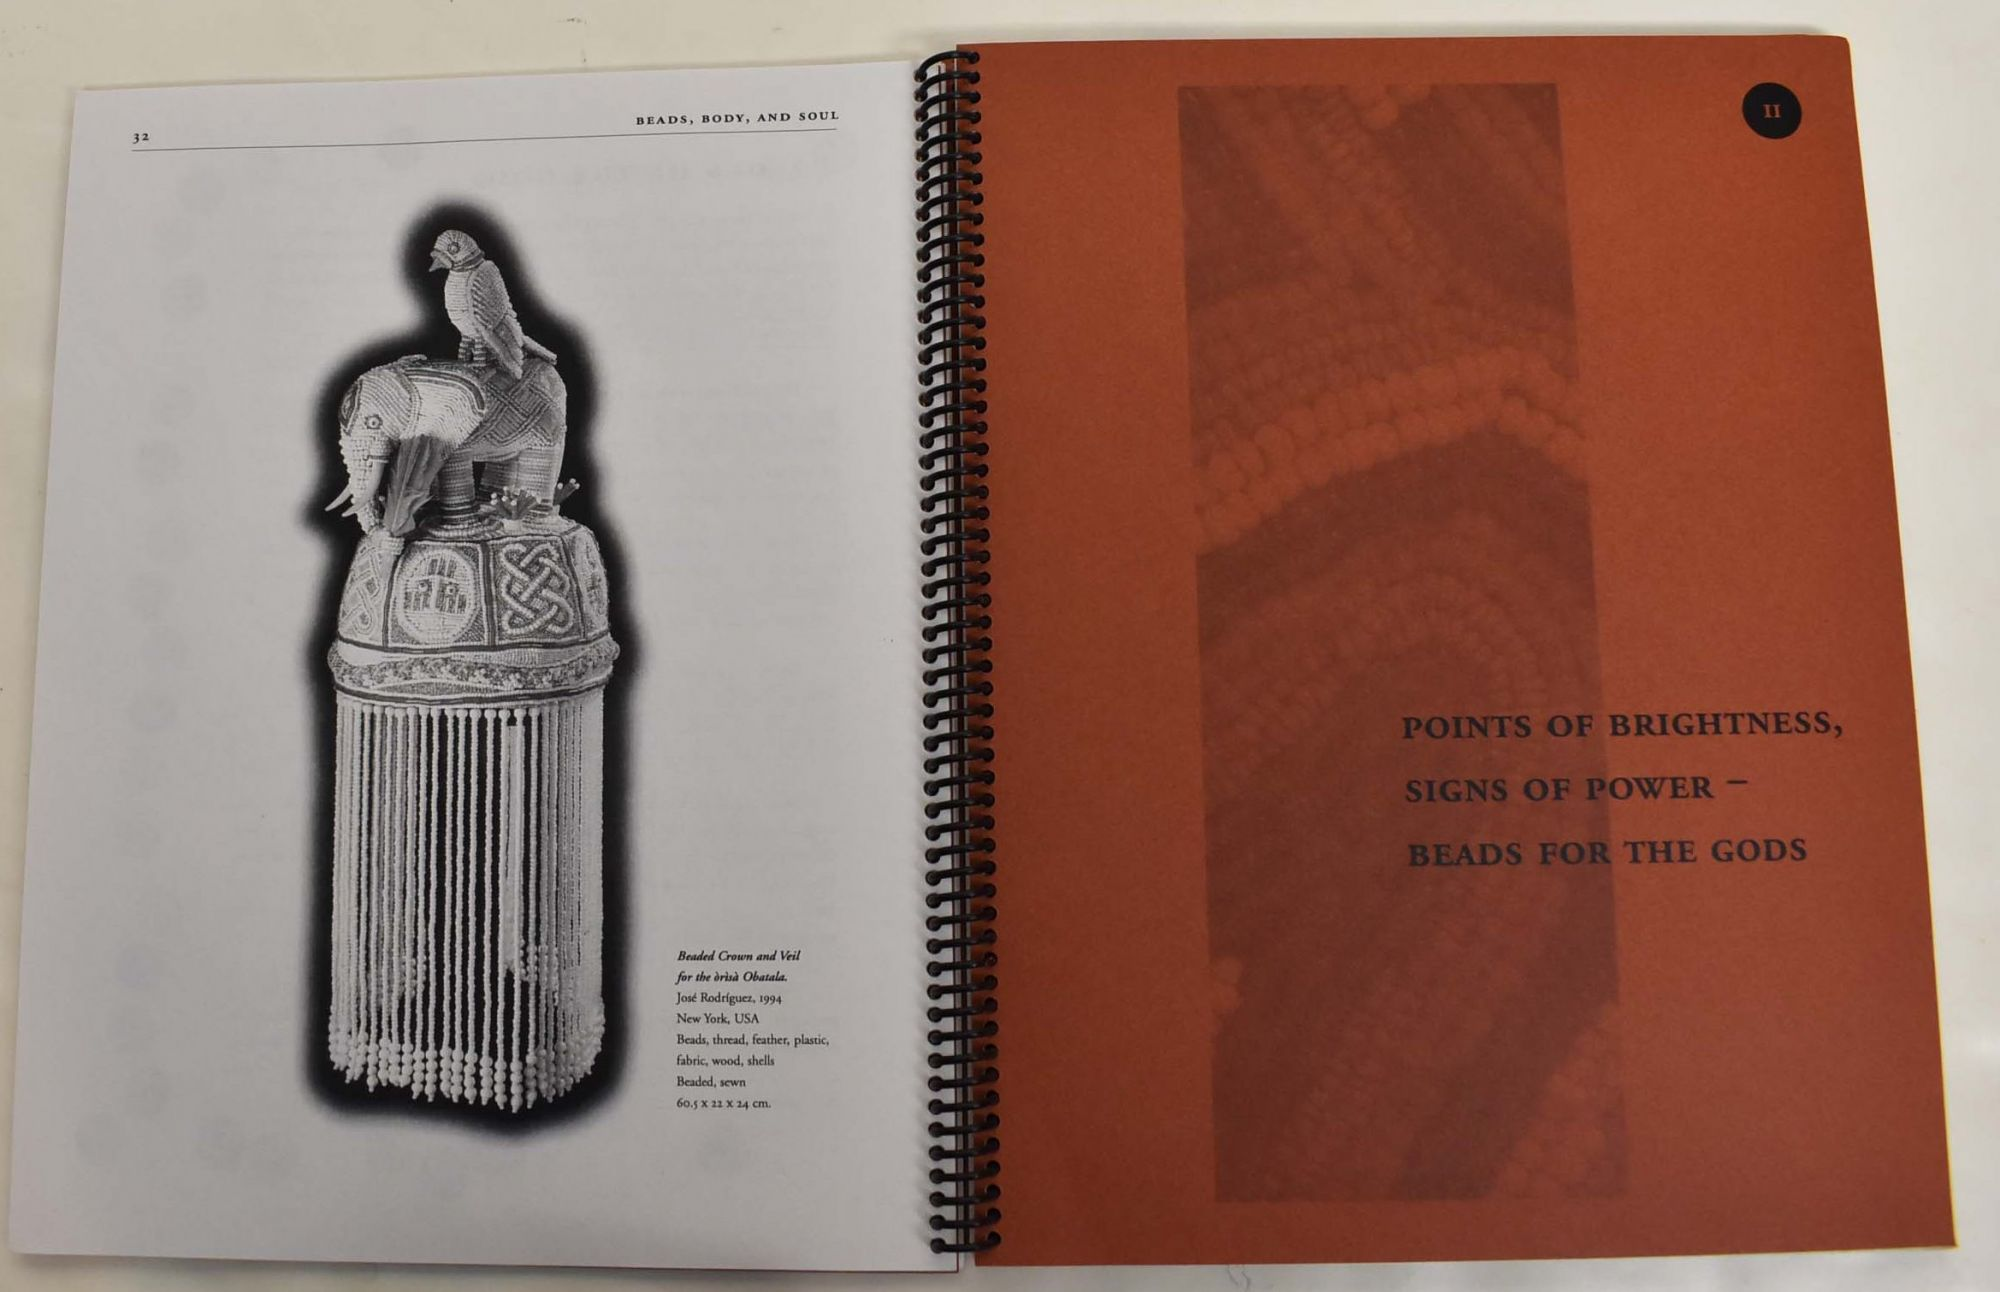 Beads, Body, and Soul: Art & Light in the Yoruba Universe by Lyn Avins,  Betsy D  Quick on Mullen Books